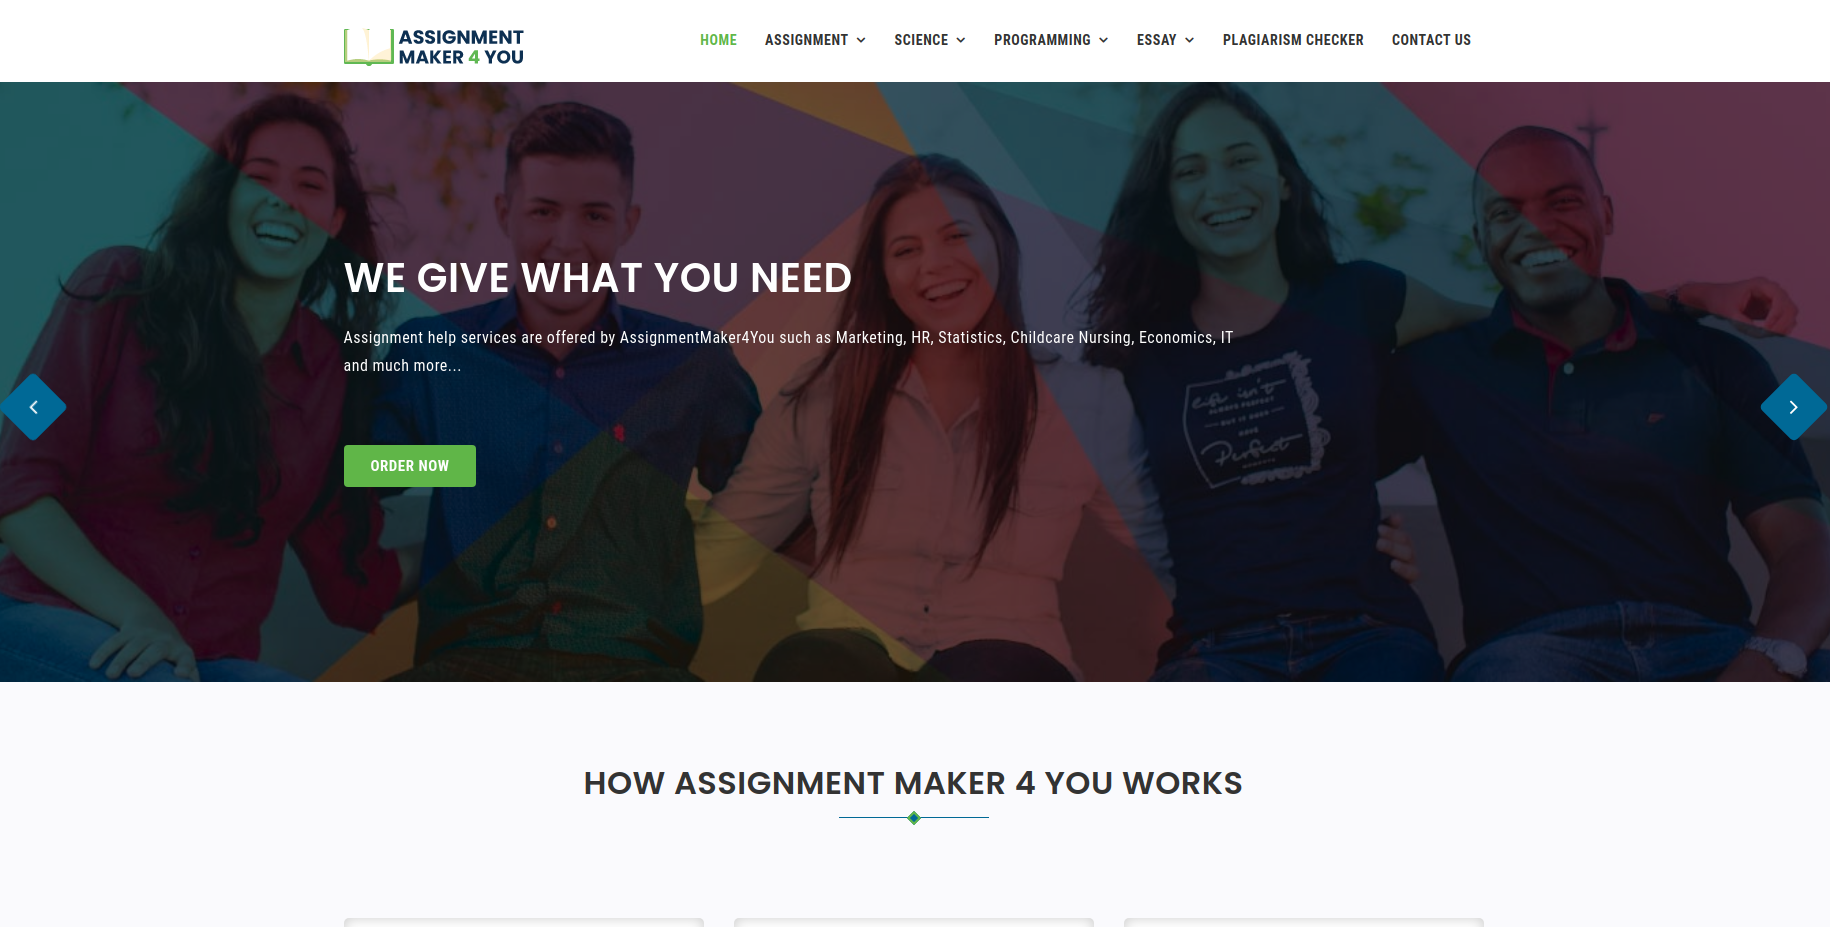 Assignment Maker 4 You